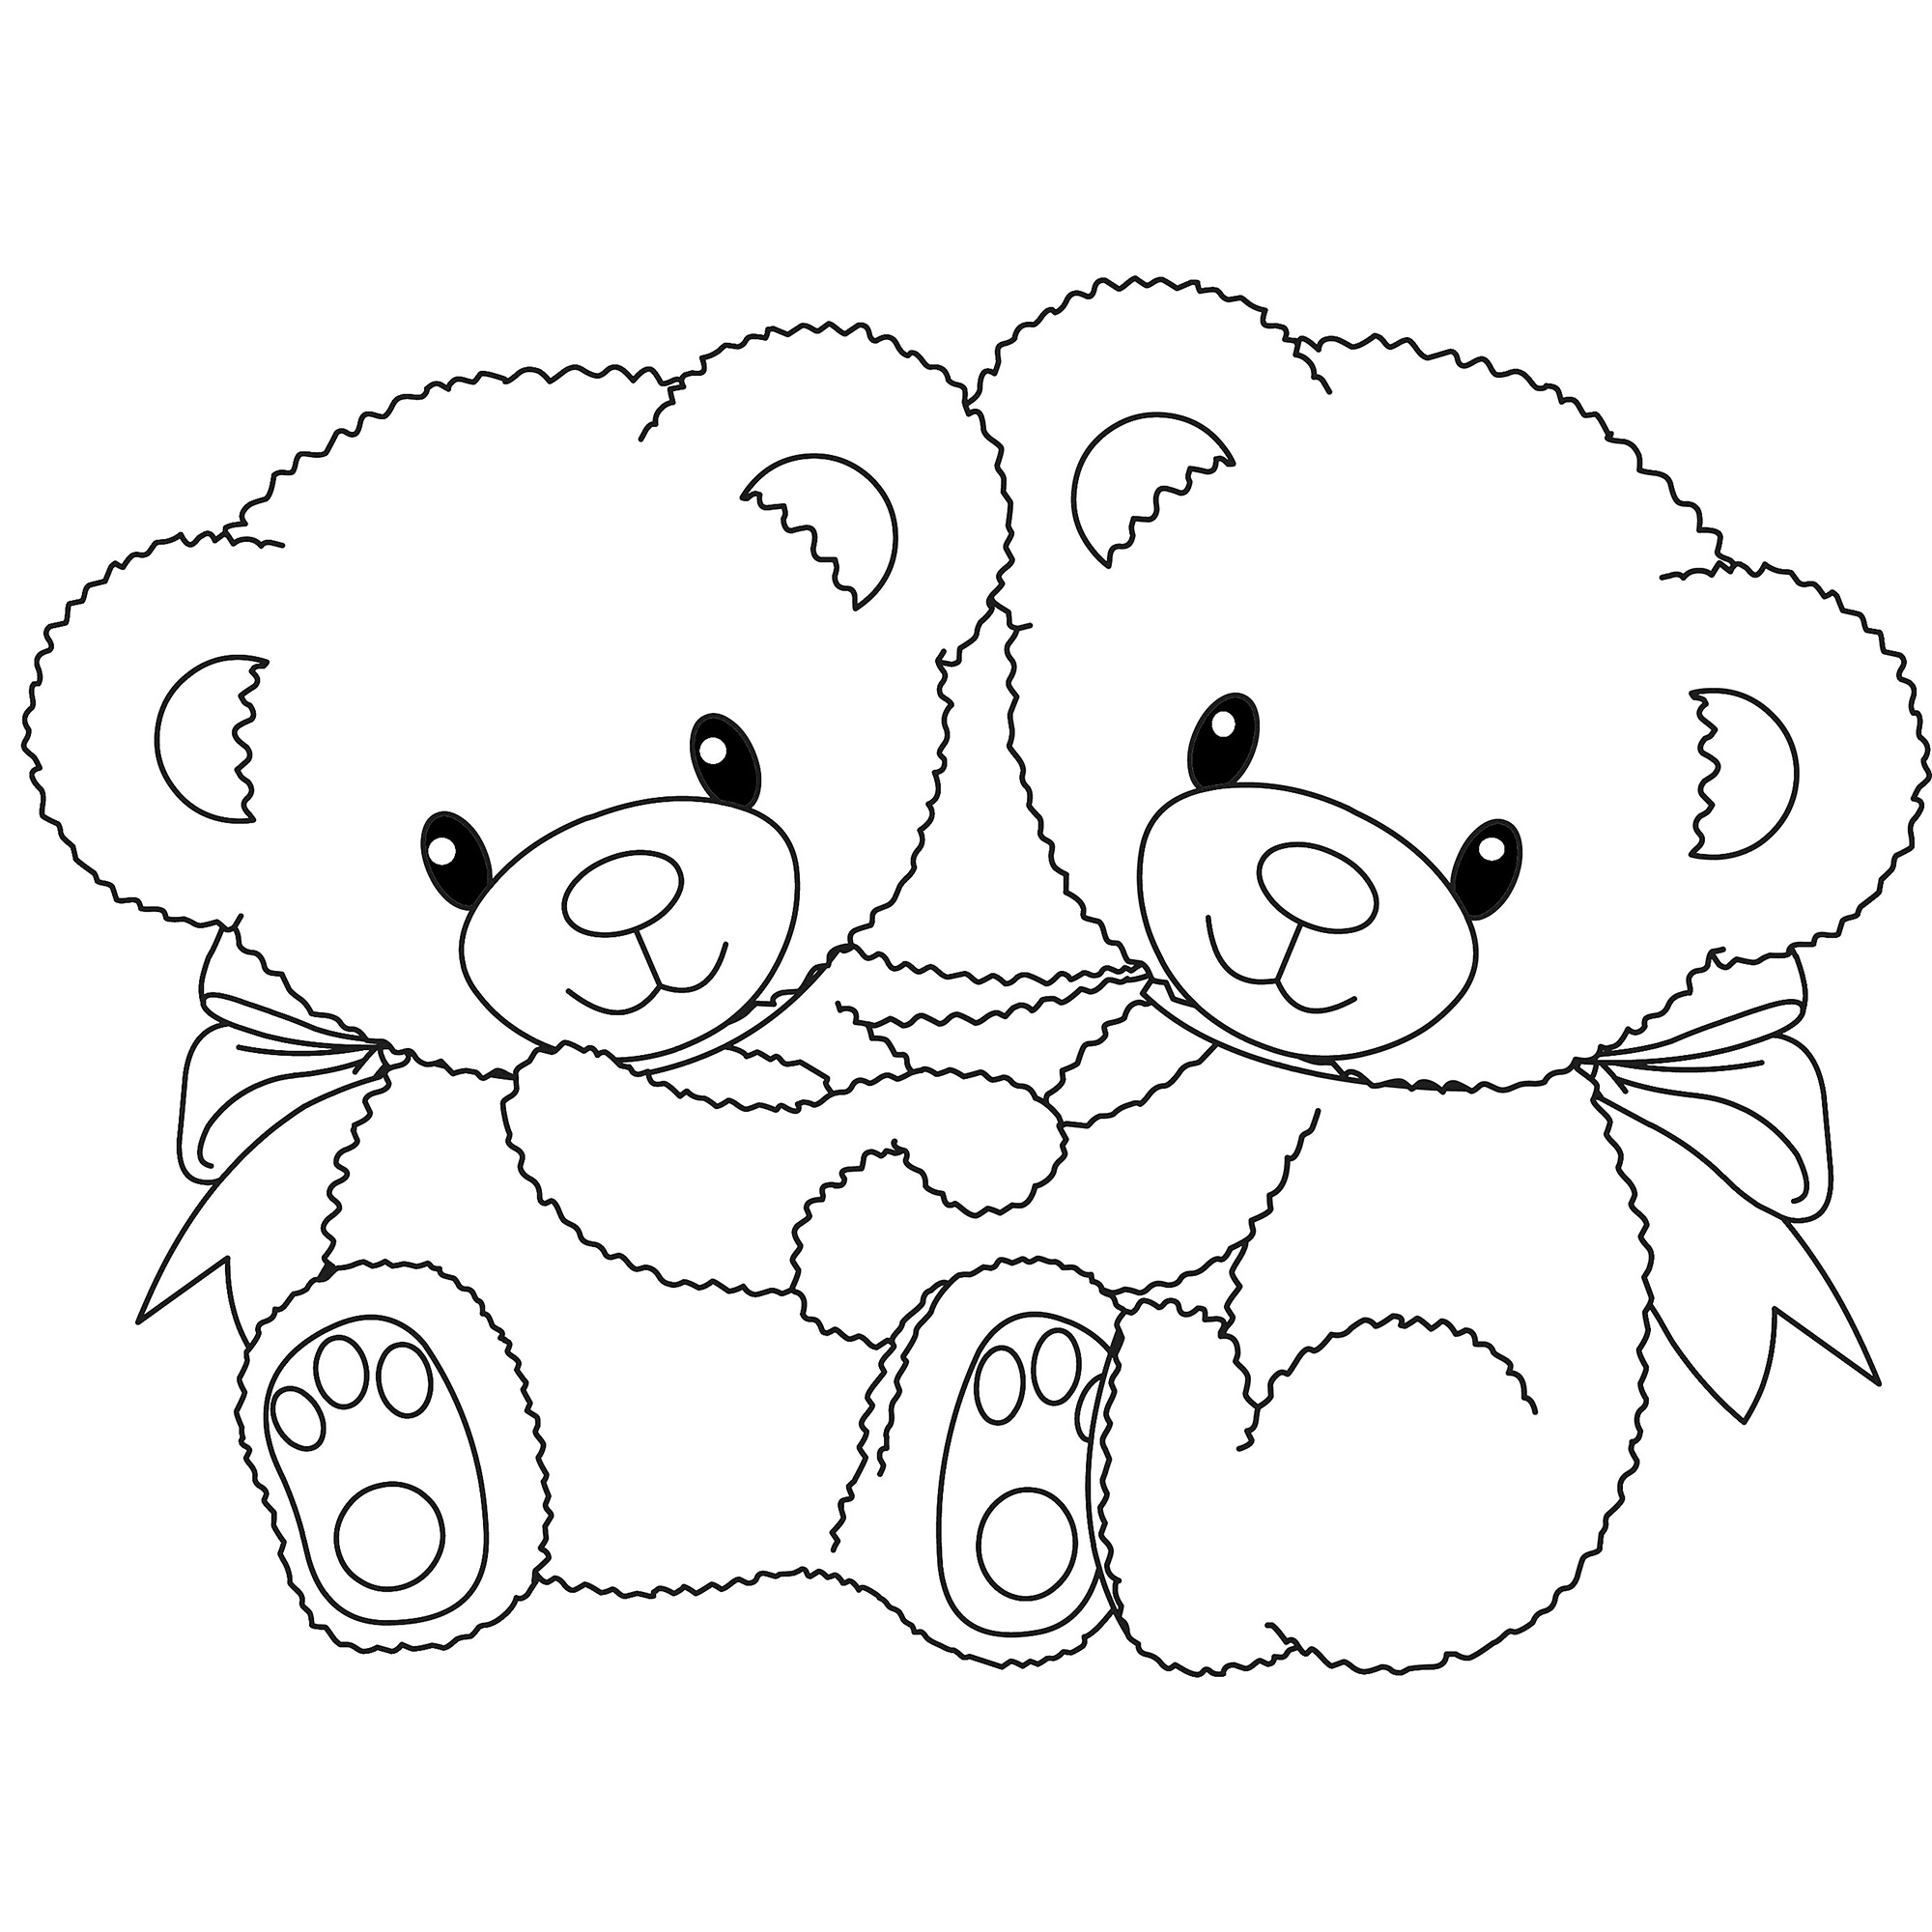 2000x2000 Teddy Bear Colorful Drawing Line Drawing Teddy Bear Free